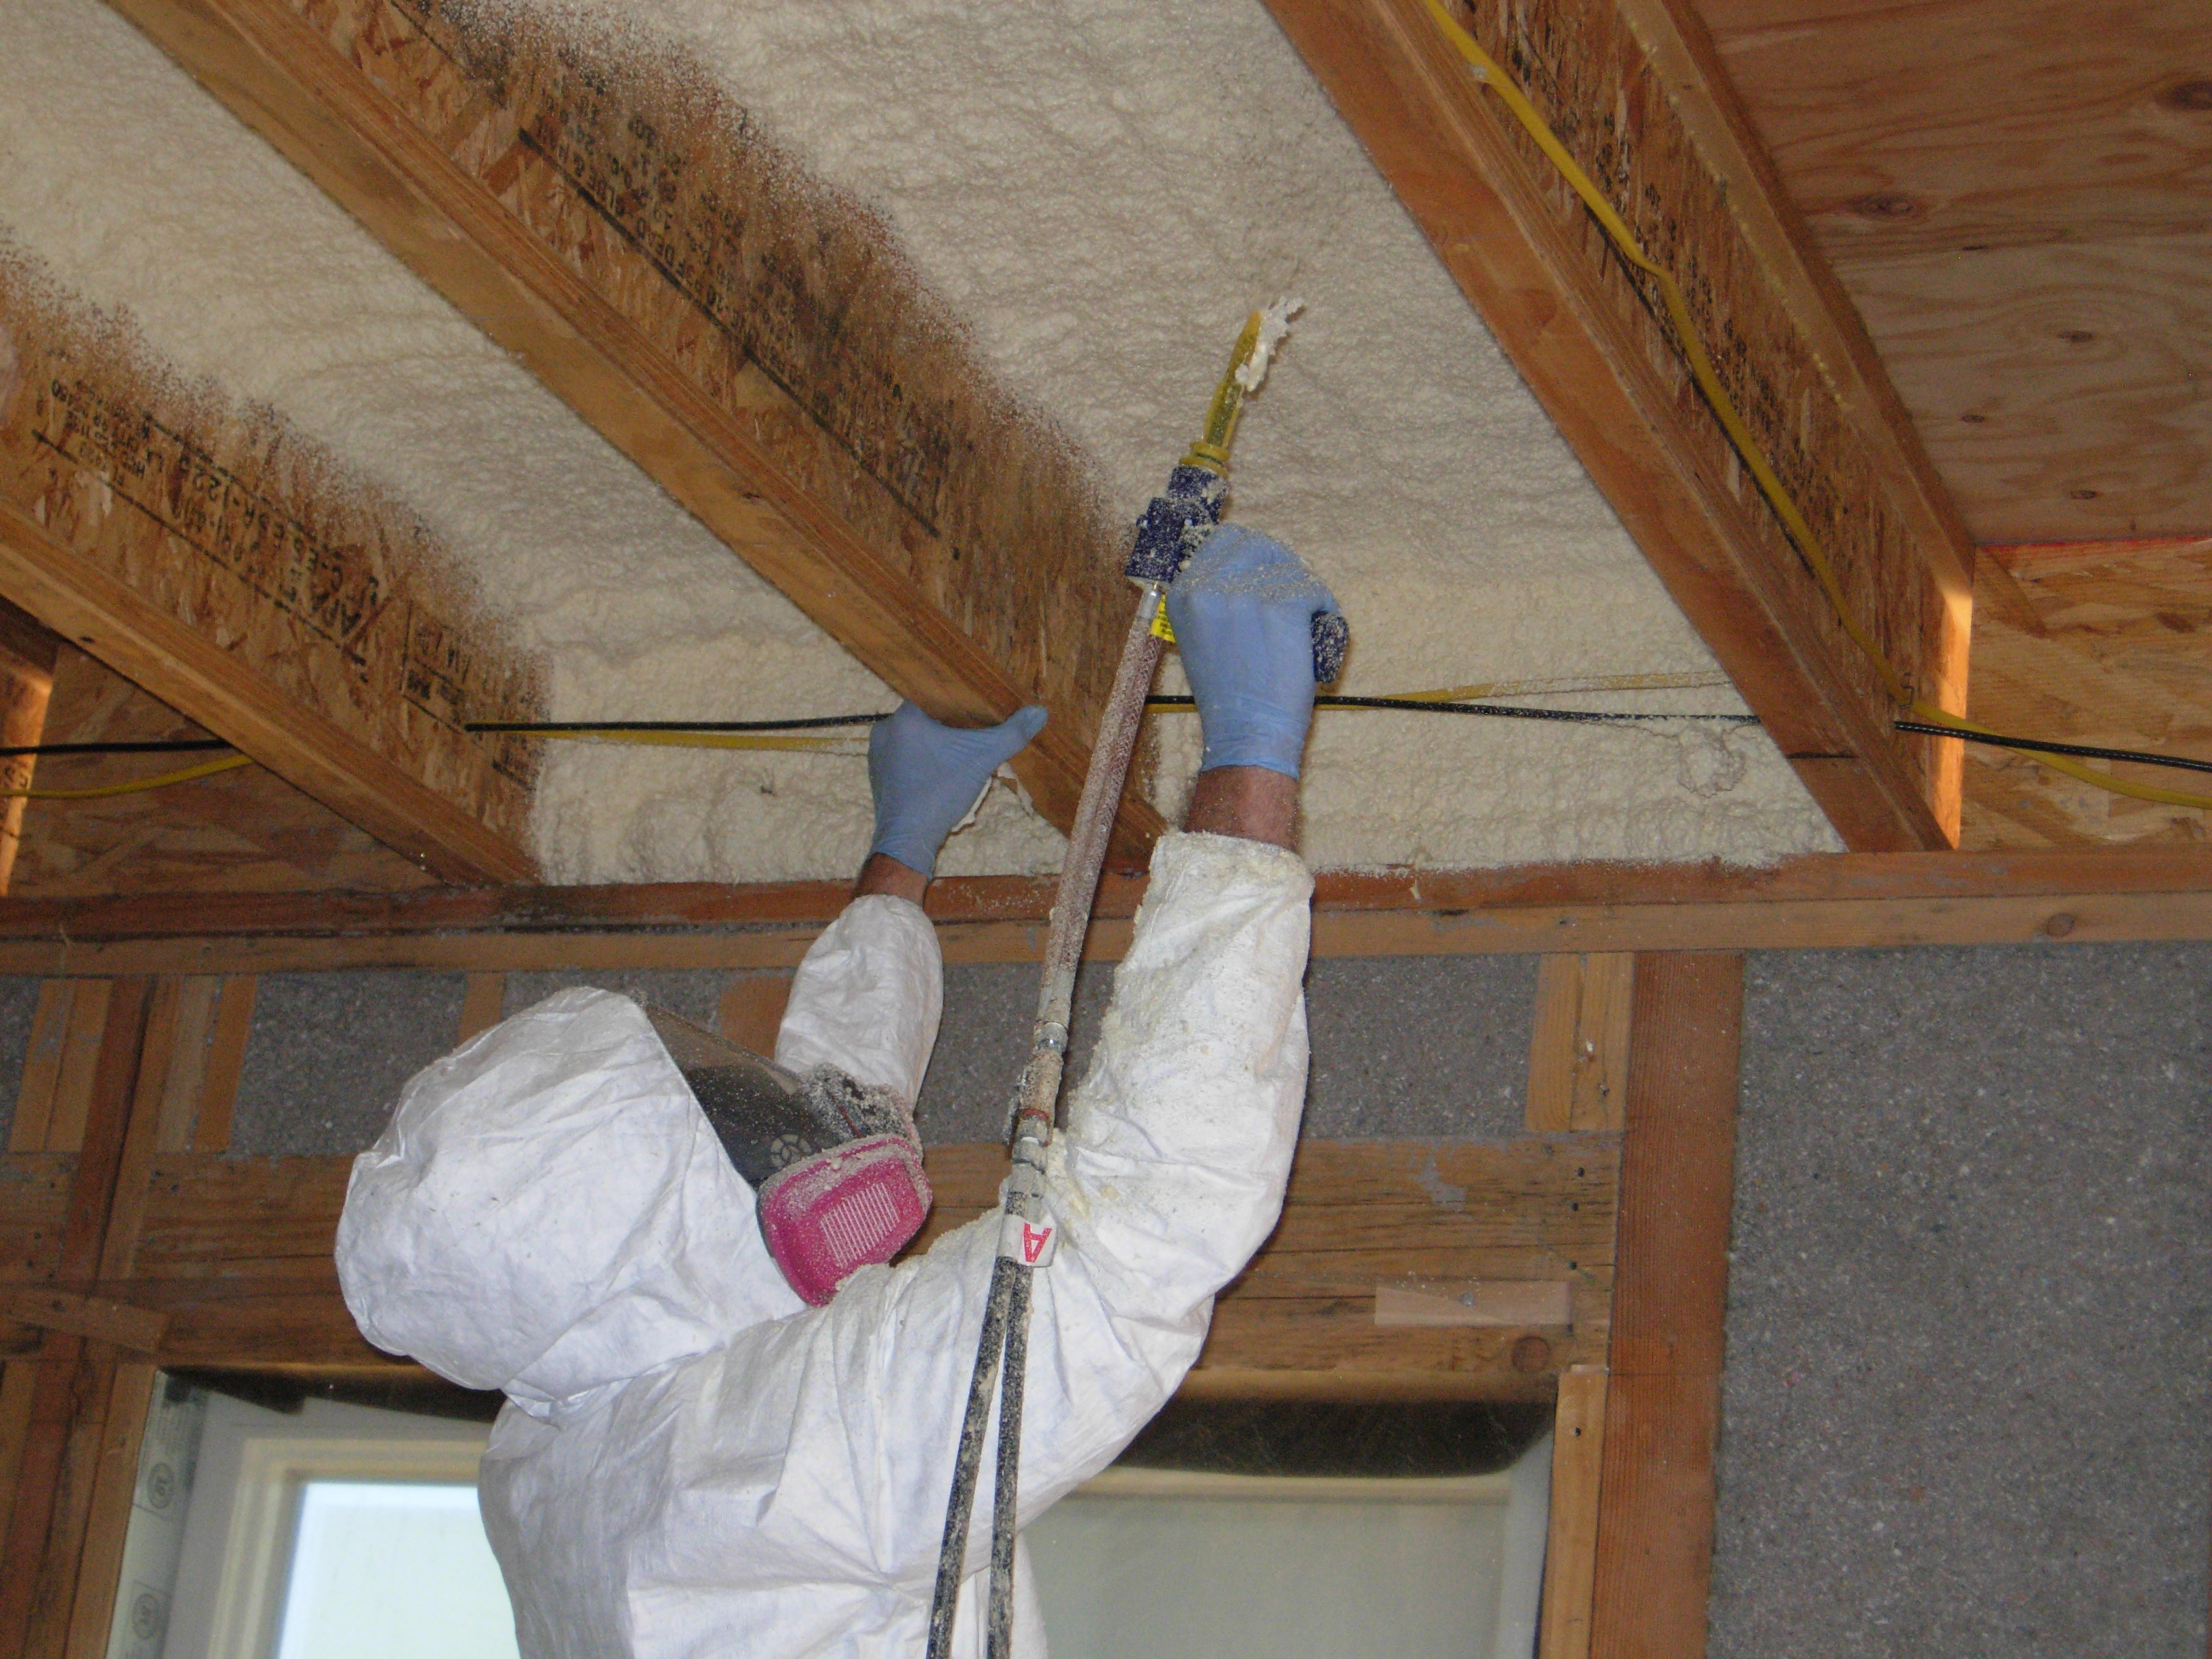 Roof Beautiful Sela Roofing Spray Foam Insulation A Good Option pertaining to sizing 3264 X 2448